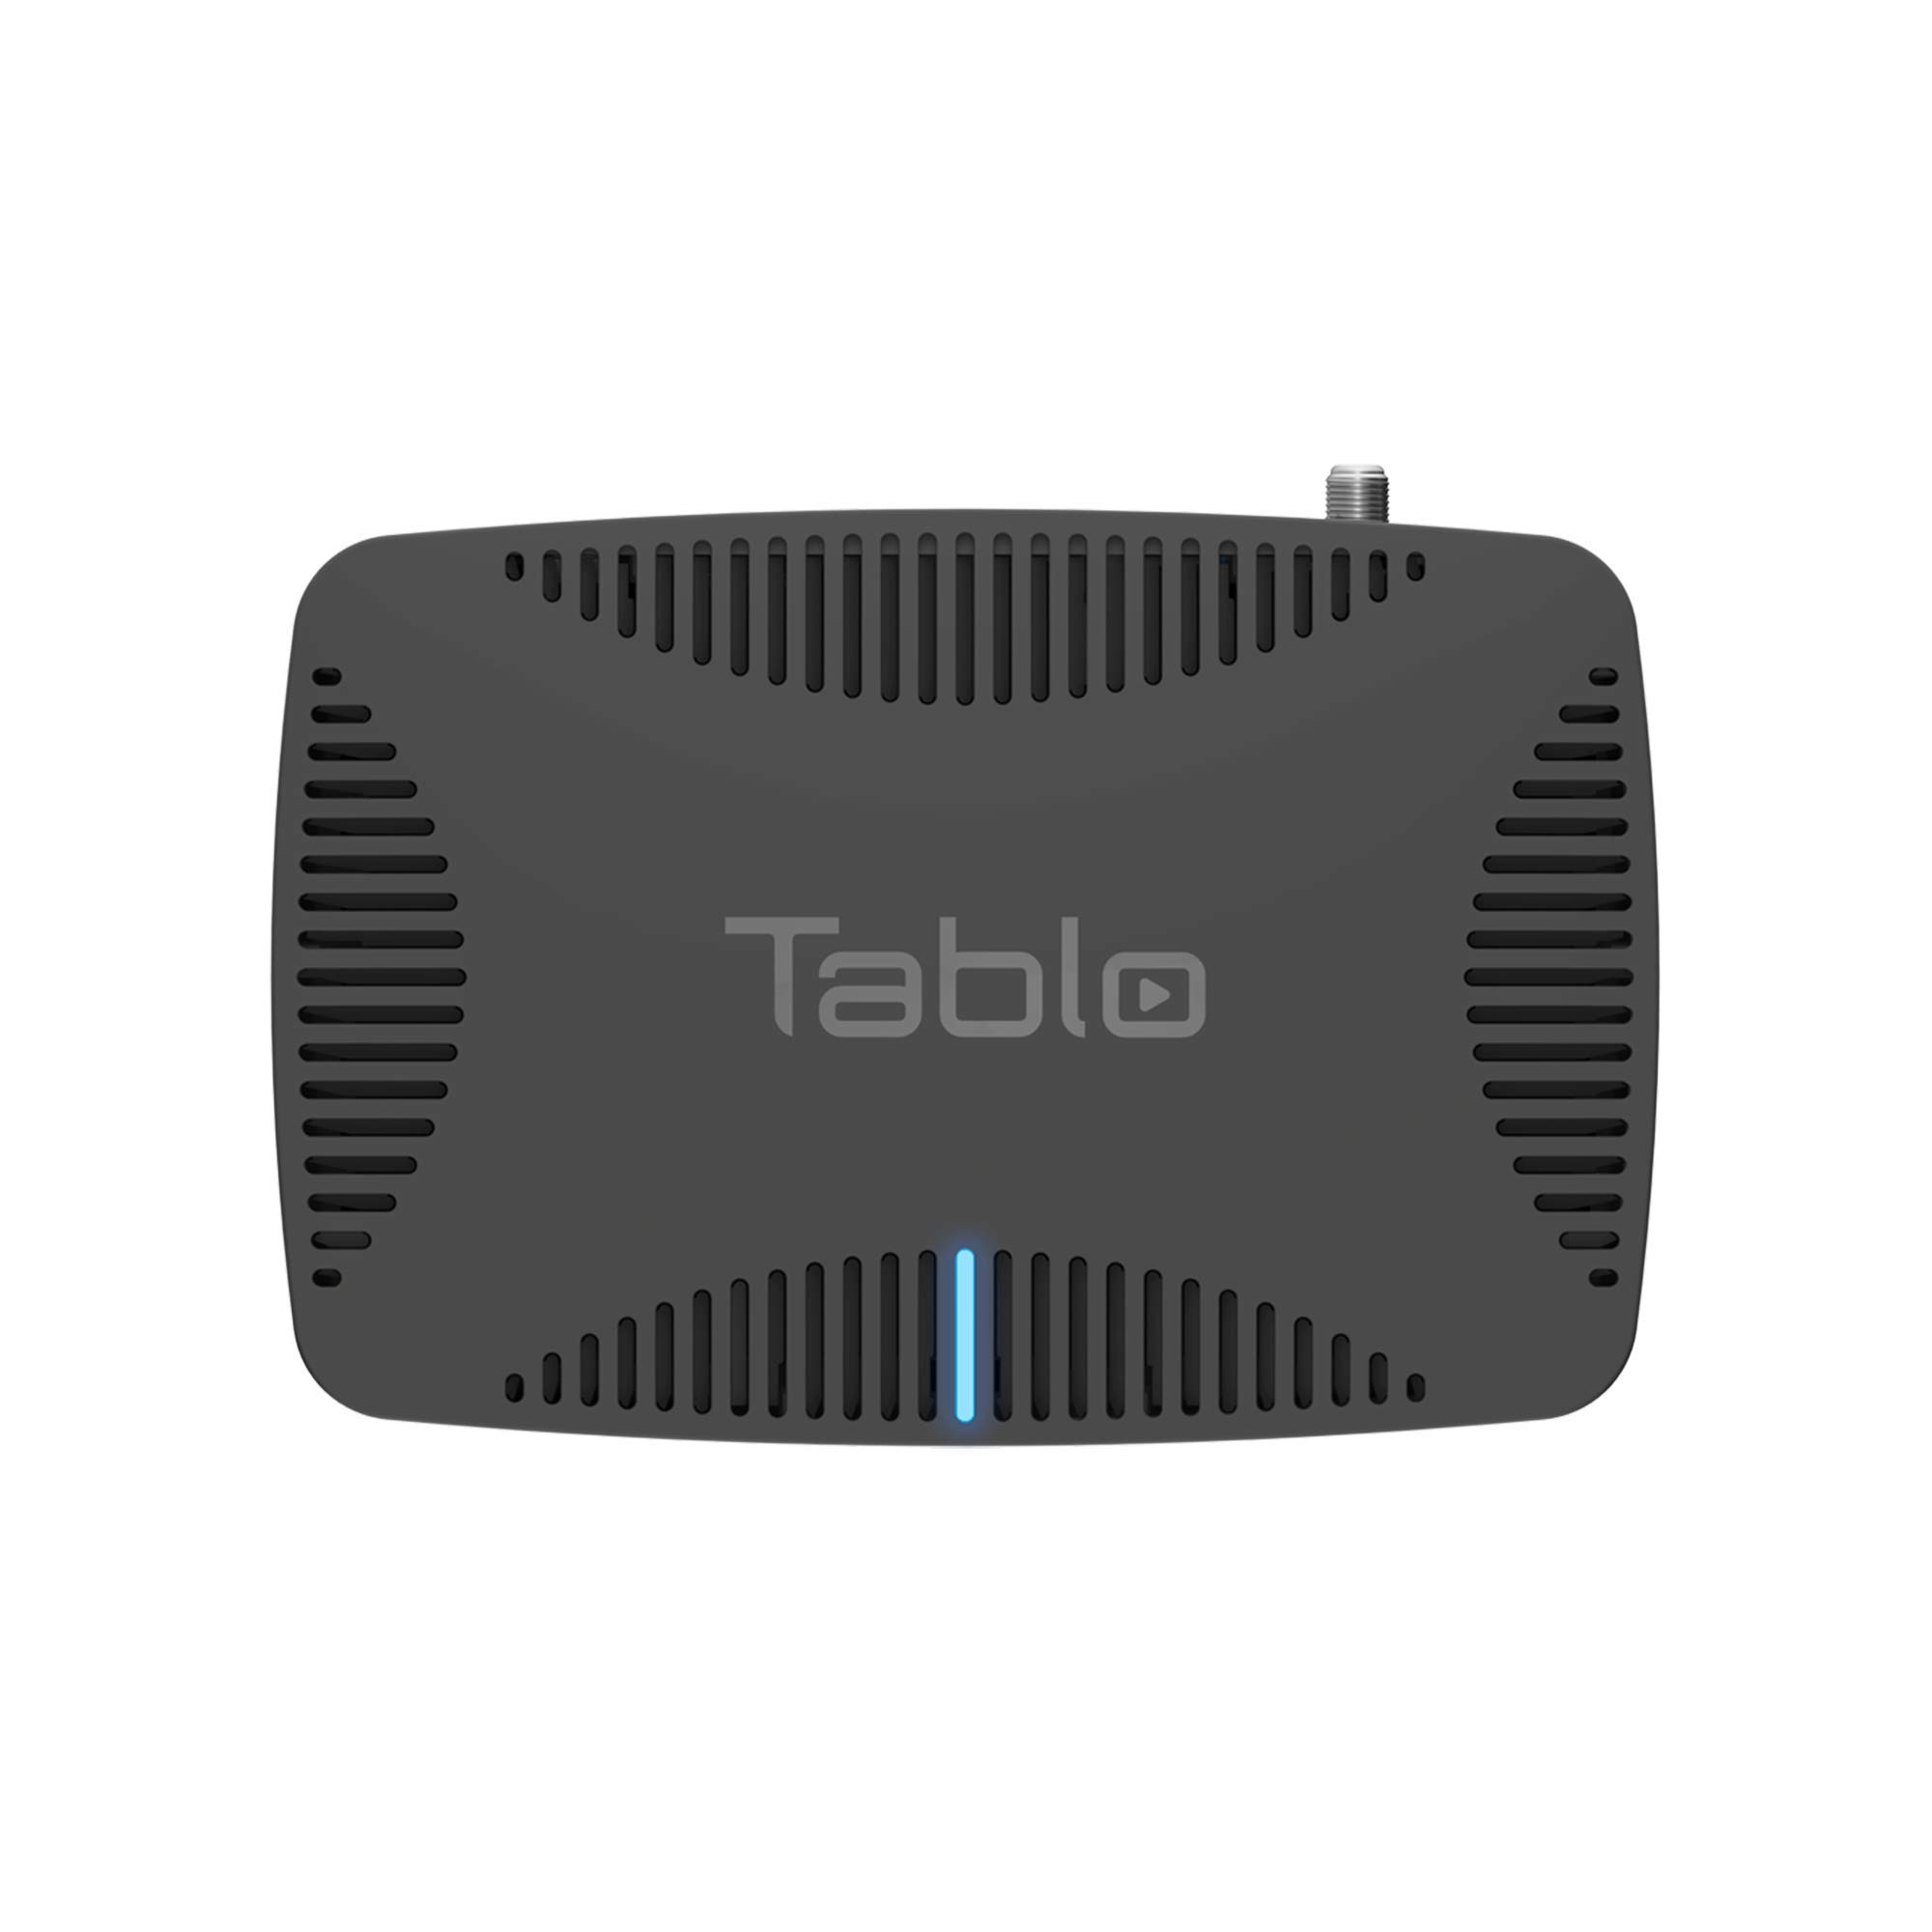 Tablo Quad OTA DVR for Cord Cutters - with WiFi & Automatic Commercial Skip by Tablo